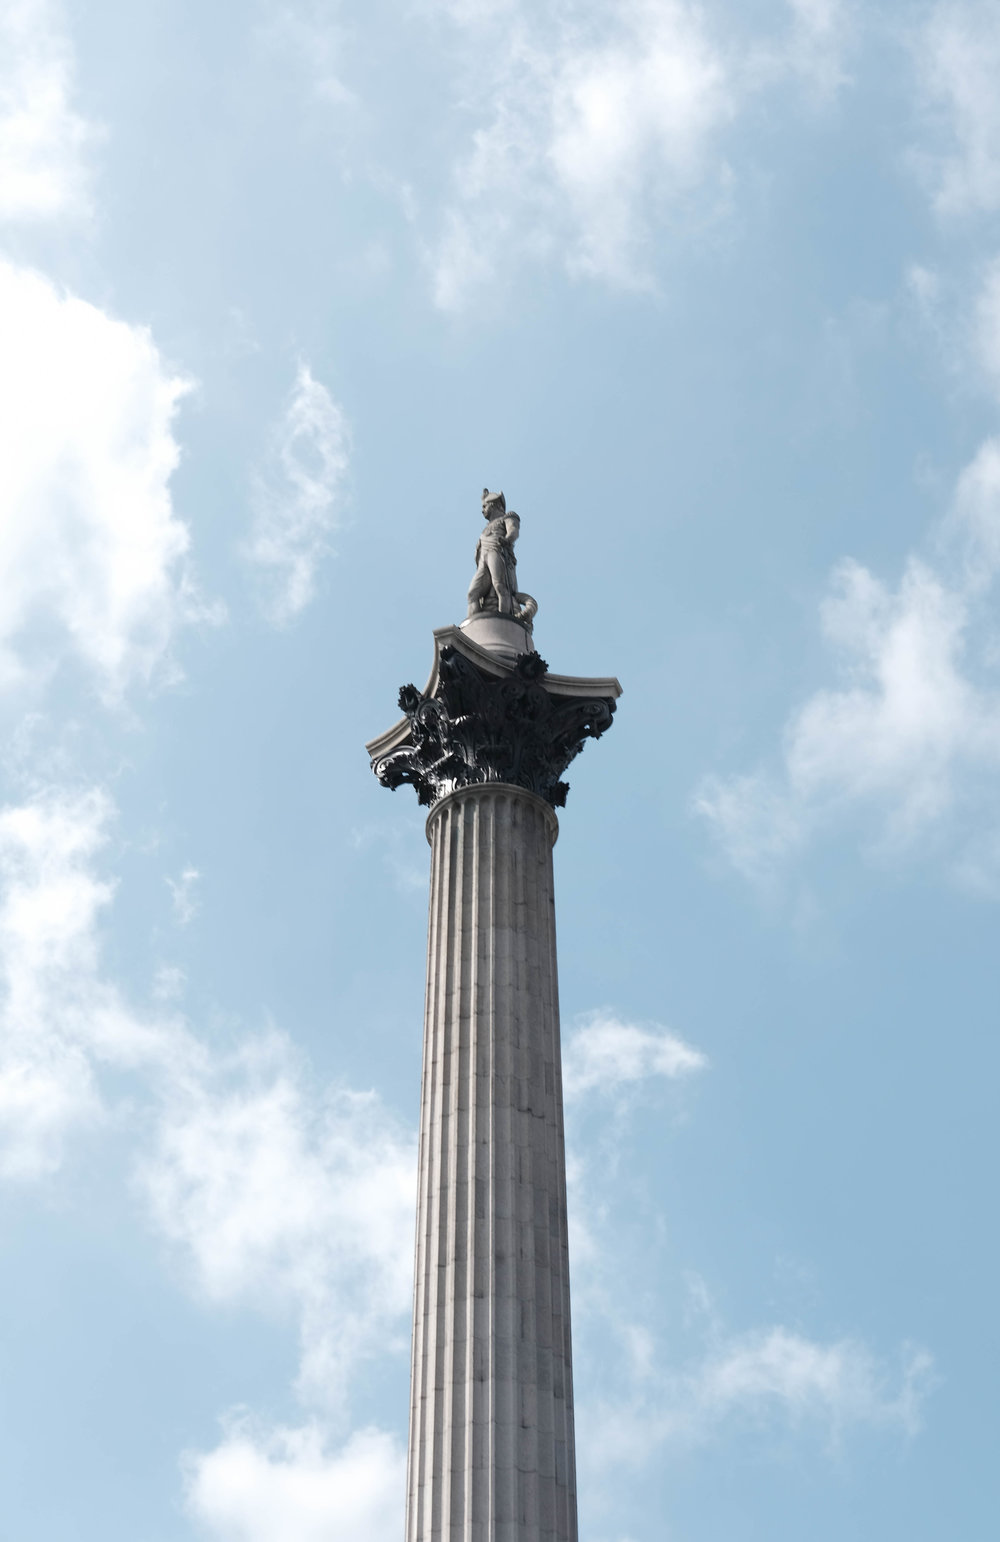 "<p style=""font-family:brandon-grotesque;font-weight:500; font-size:11px; text-center:left; color:light grey;letter-spacing: 1px"">MARCH 7, 2018 • TRAFALGAR SQUARE • 📍London, UK 🇬🇧</p>"